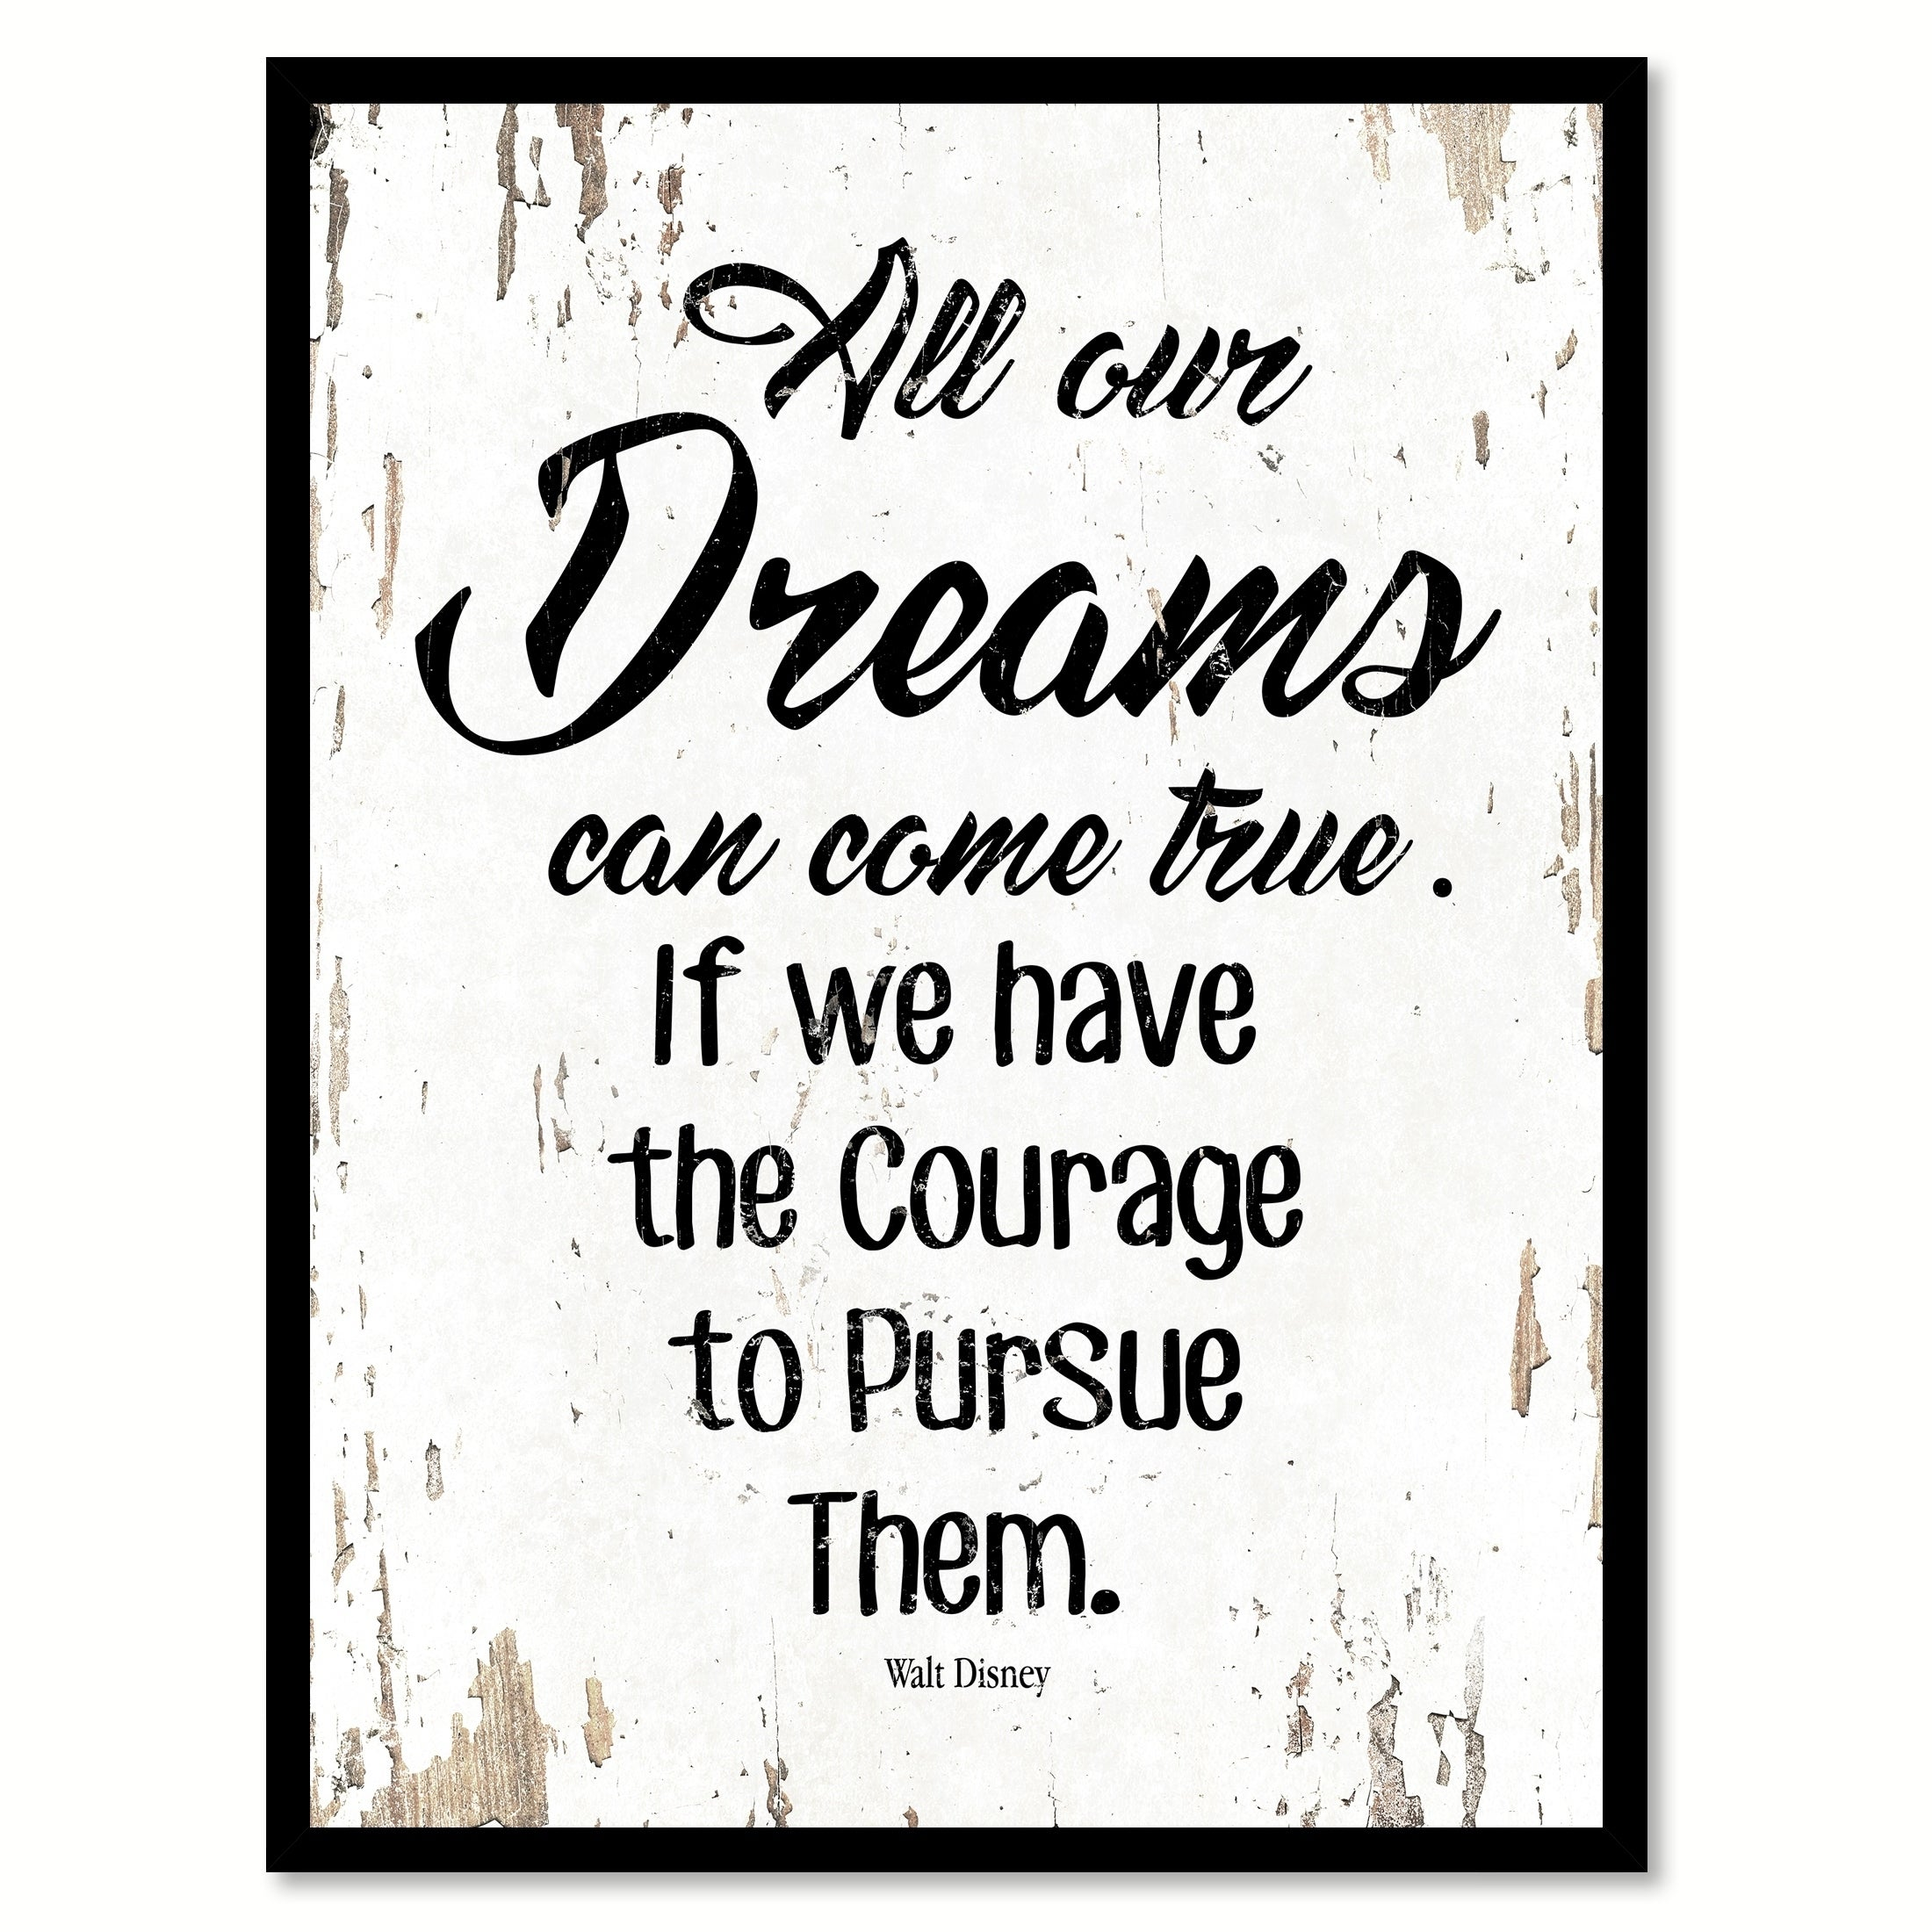 Disney Quotes About Education Topsimages